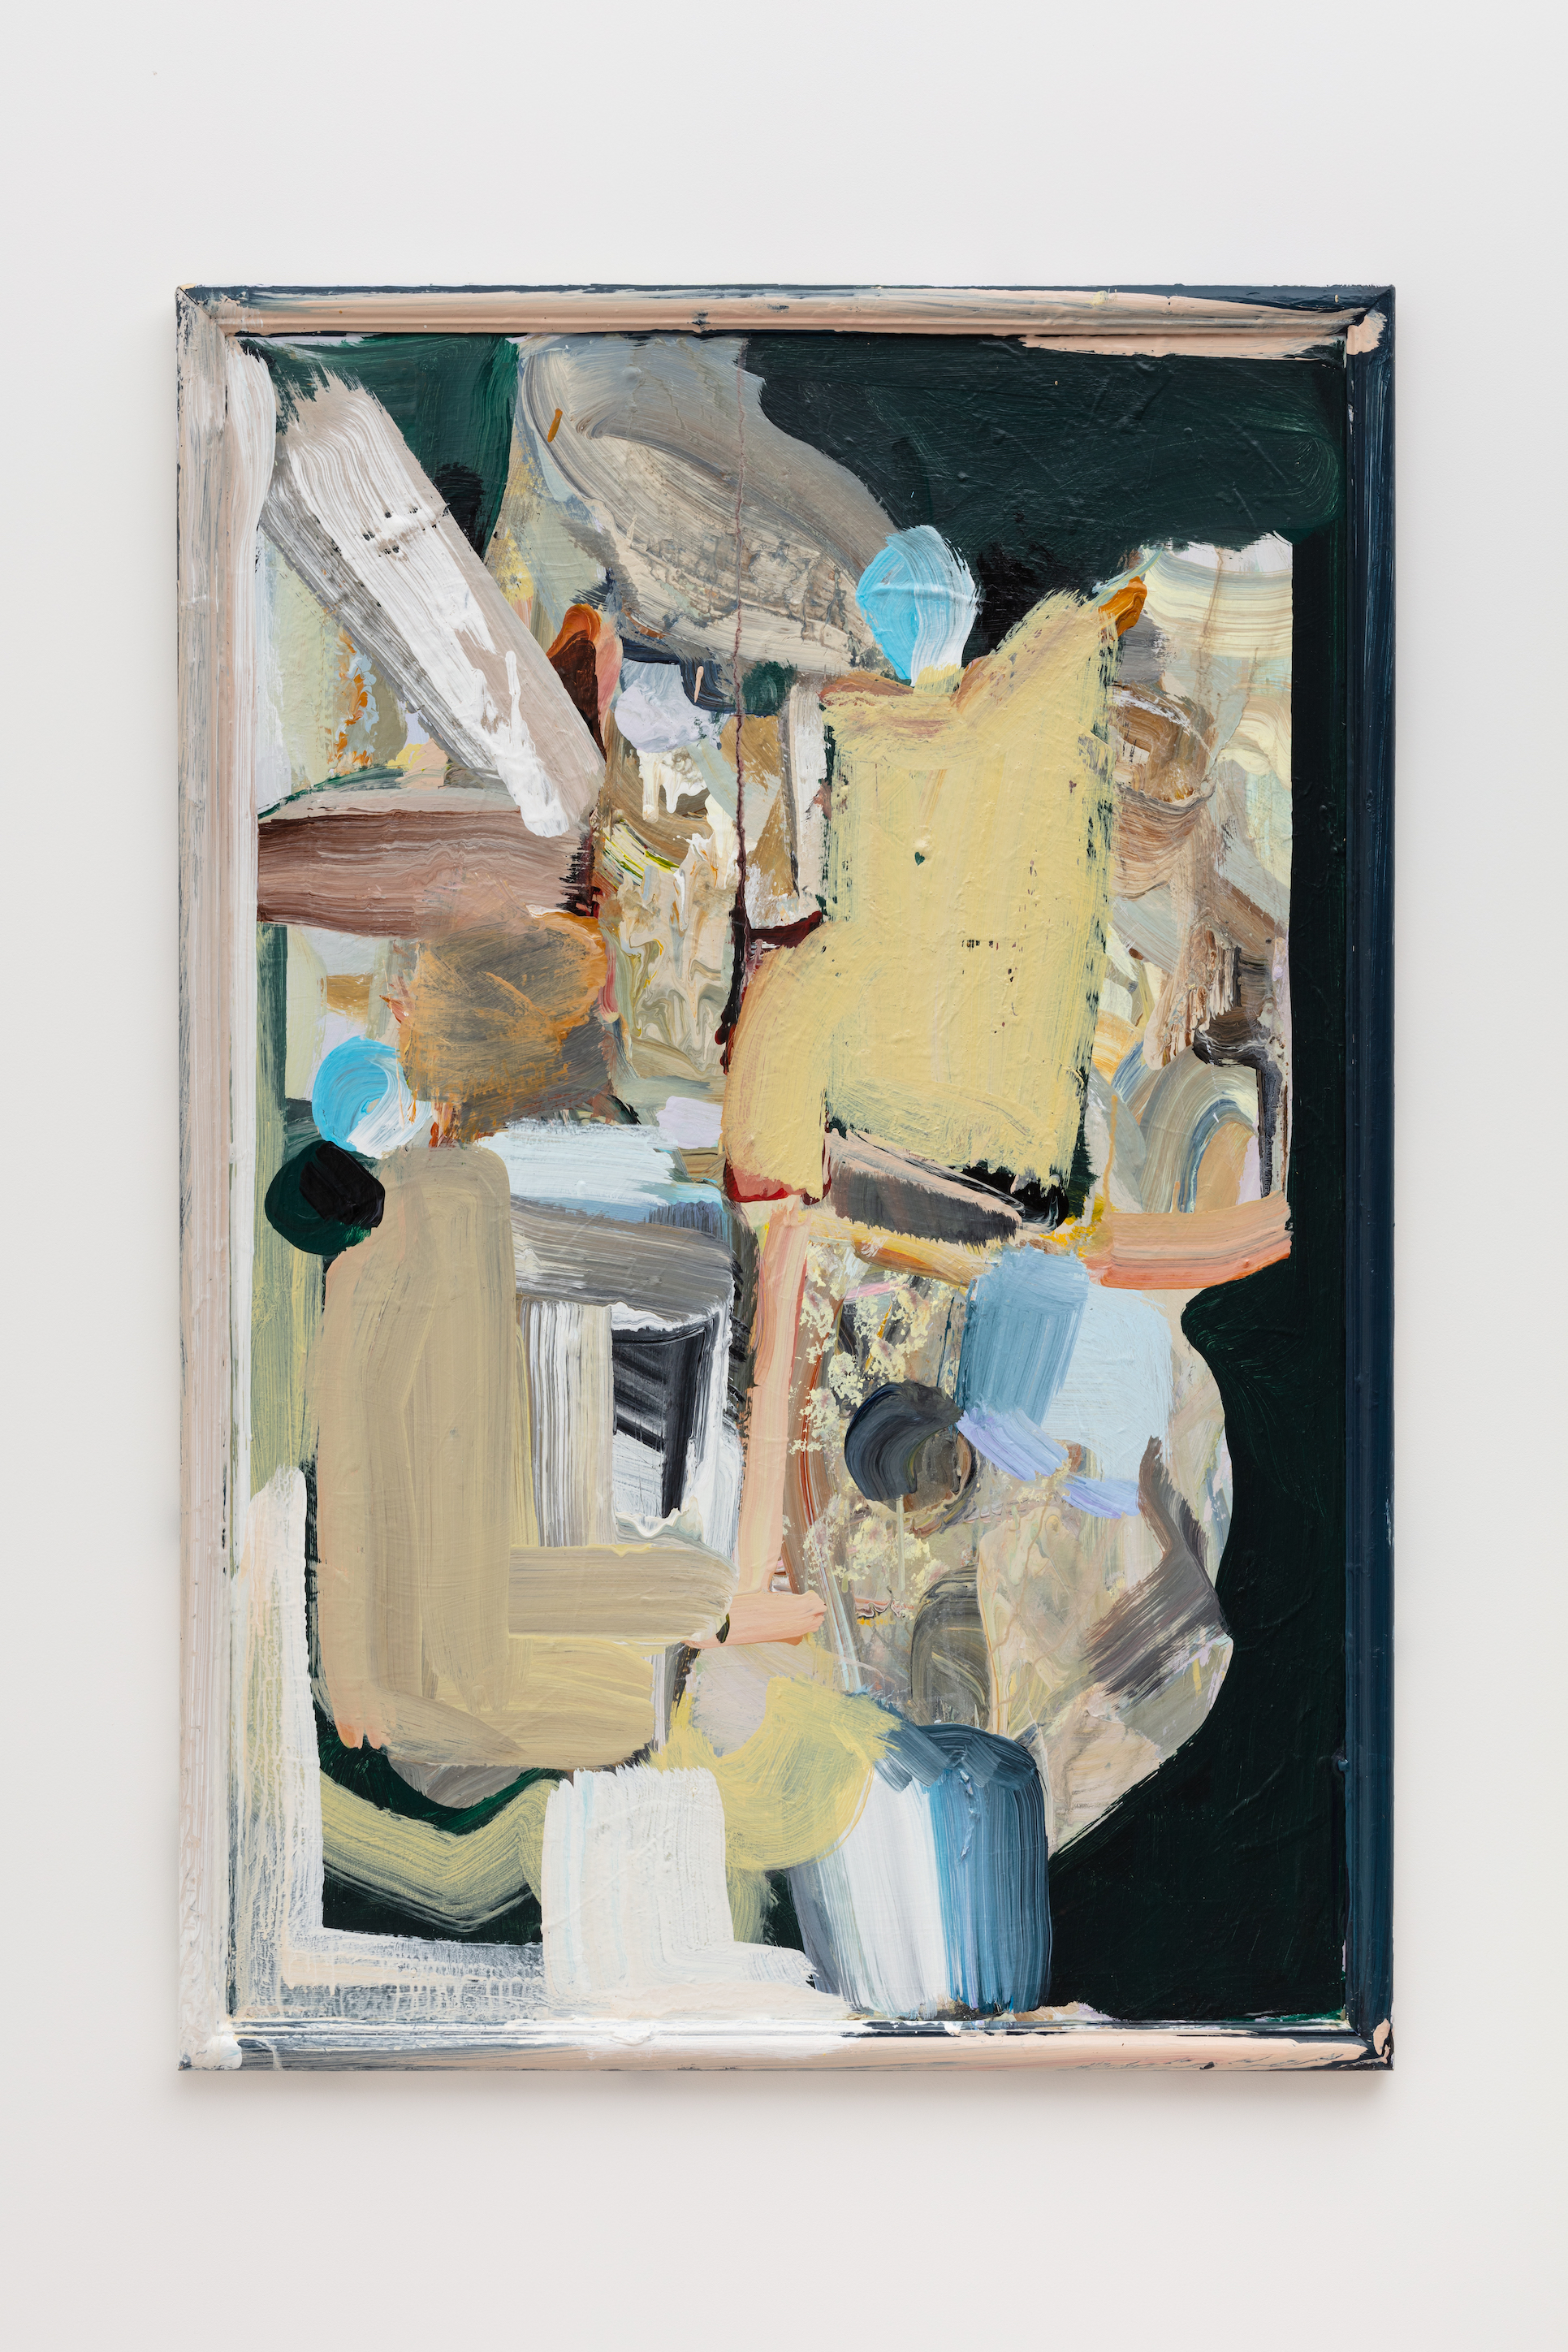 Katy Moran still life with nothing, 2019 acrylic on board in found frame 95.5 x 65.6 cm